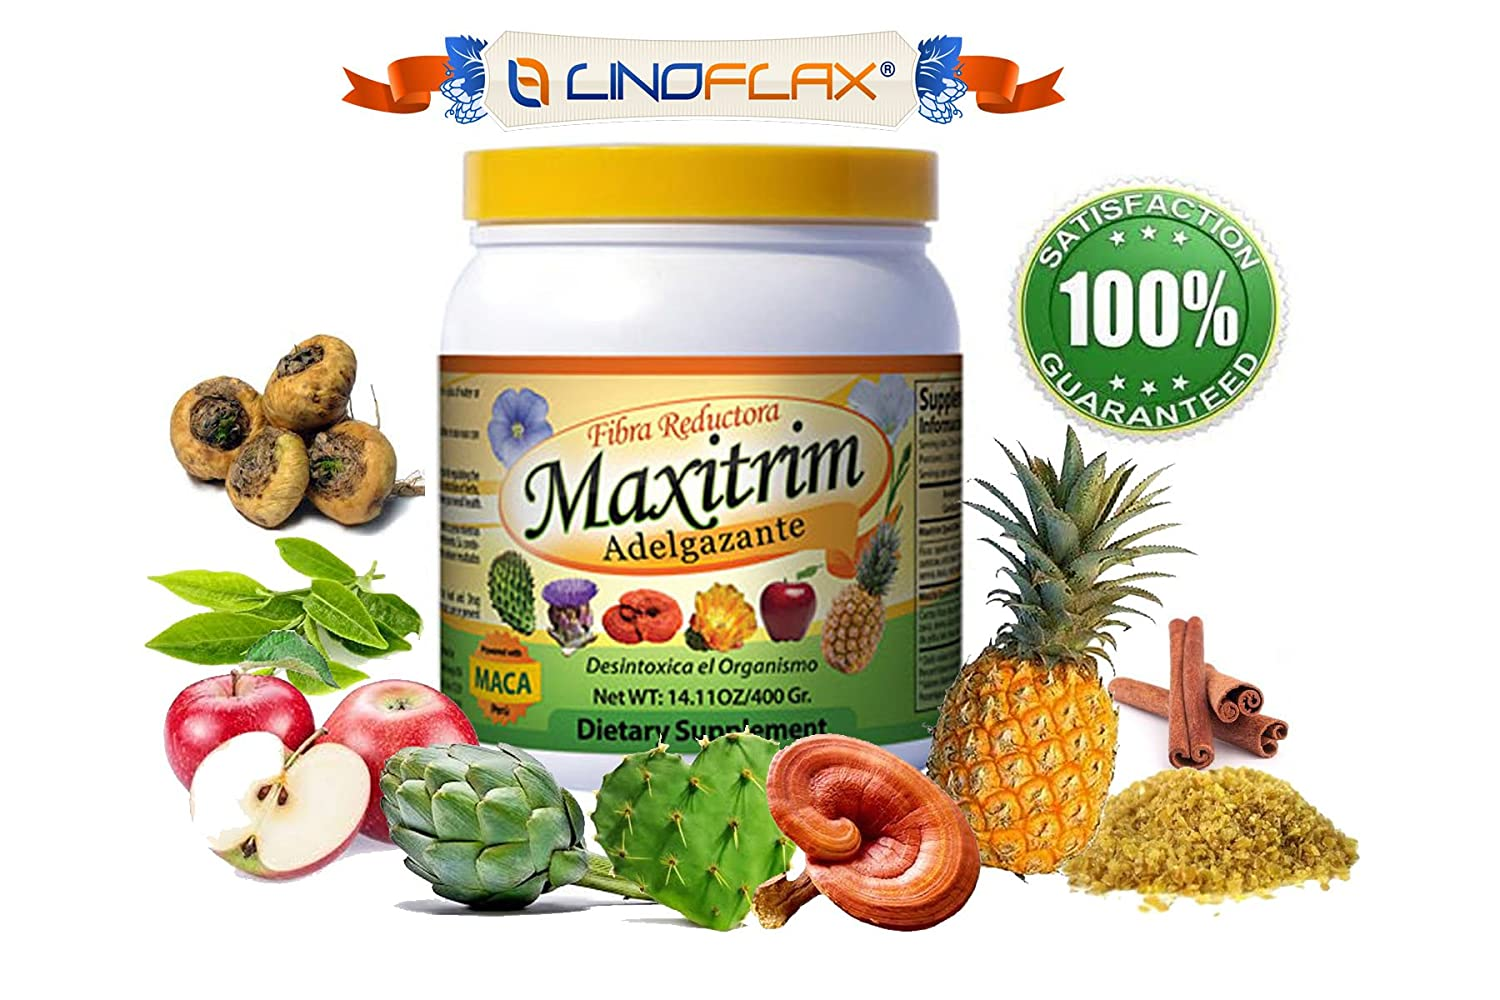 Multi Weight Loss fiber Mix Maxitrim Adelgazante Linoflax